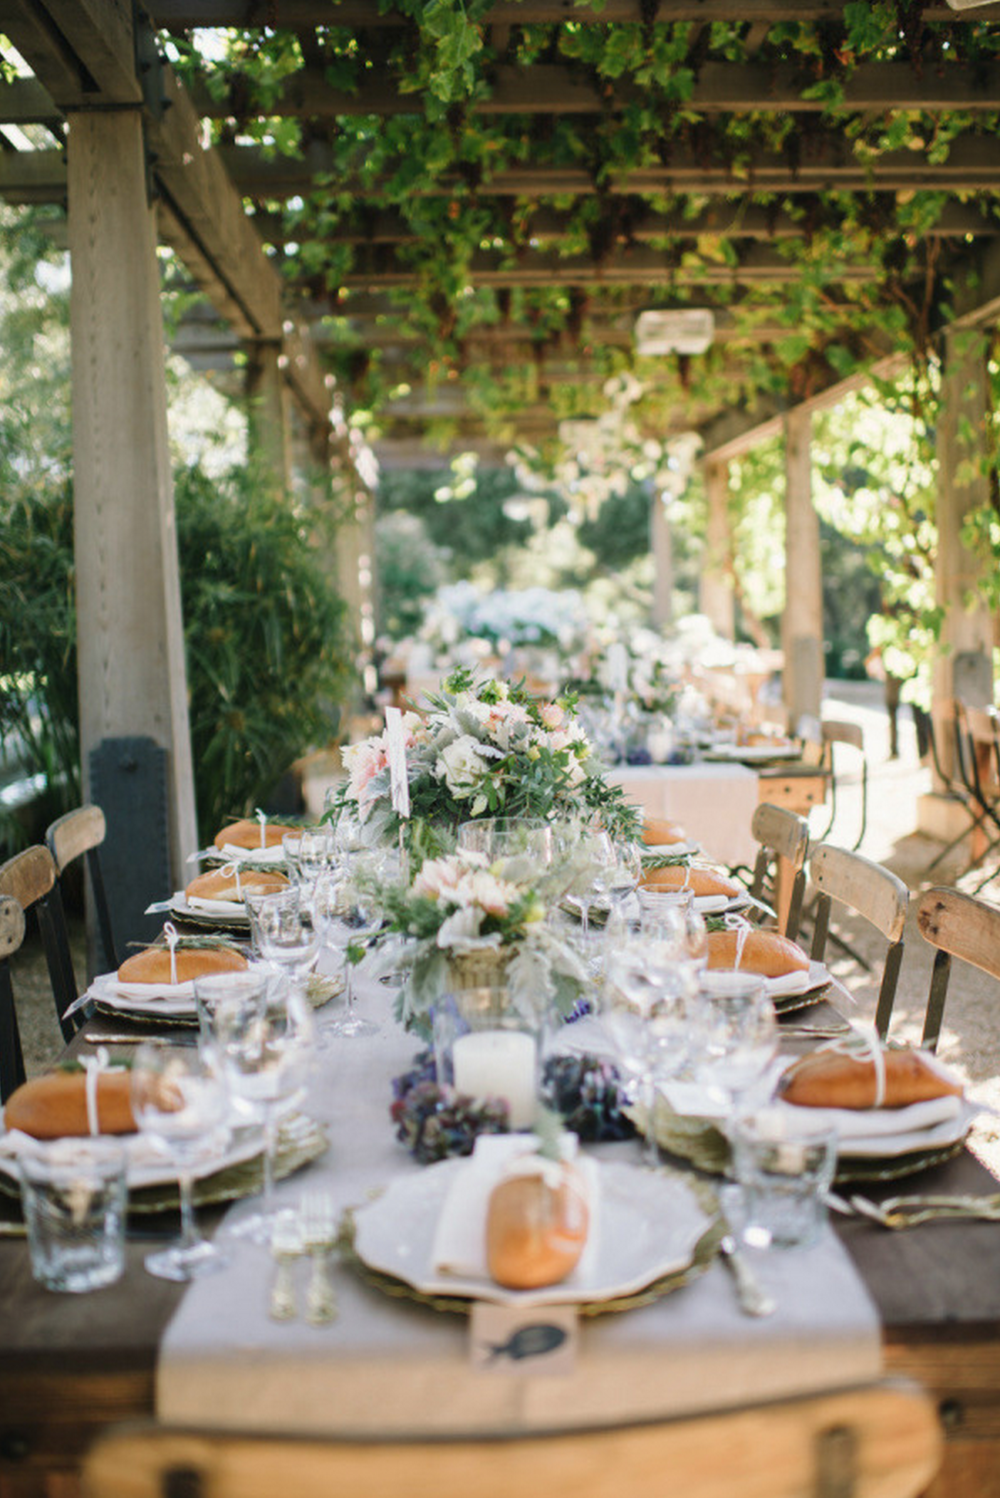 7. Carmel Valley Wedding from Delbarr Moradi + Simone Lennon on Style me Pretty: Gold chargers, natural Linens and whole loaves of bread as your place card setting? Don't mind if I do. #carbday